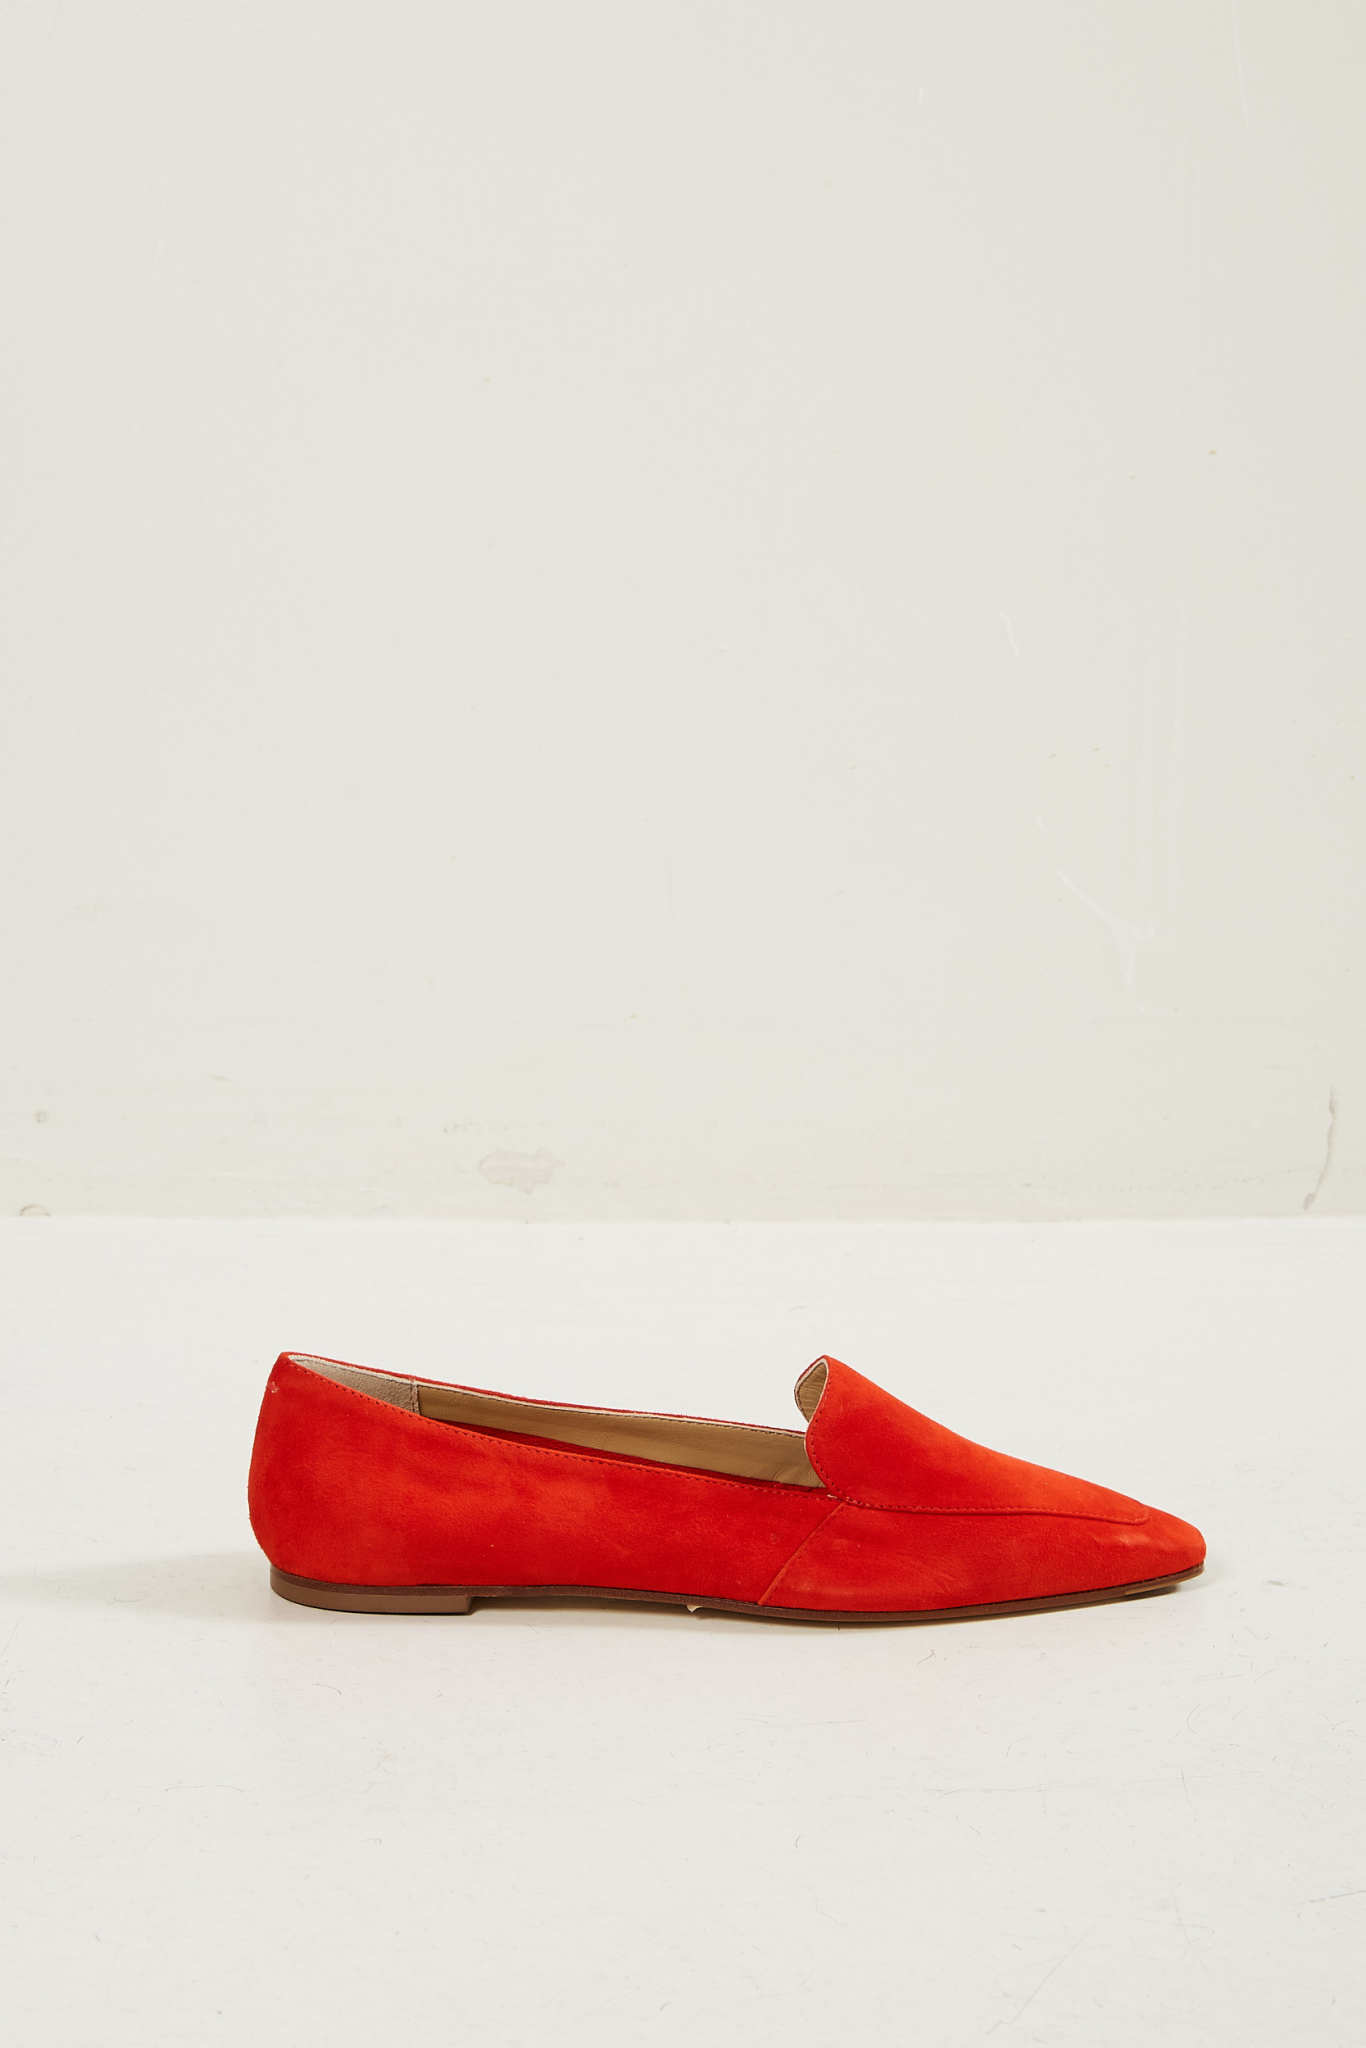 Aeyde - Aurora Toscano loafers.